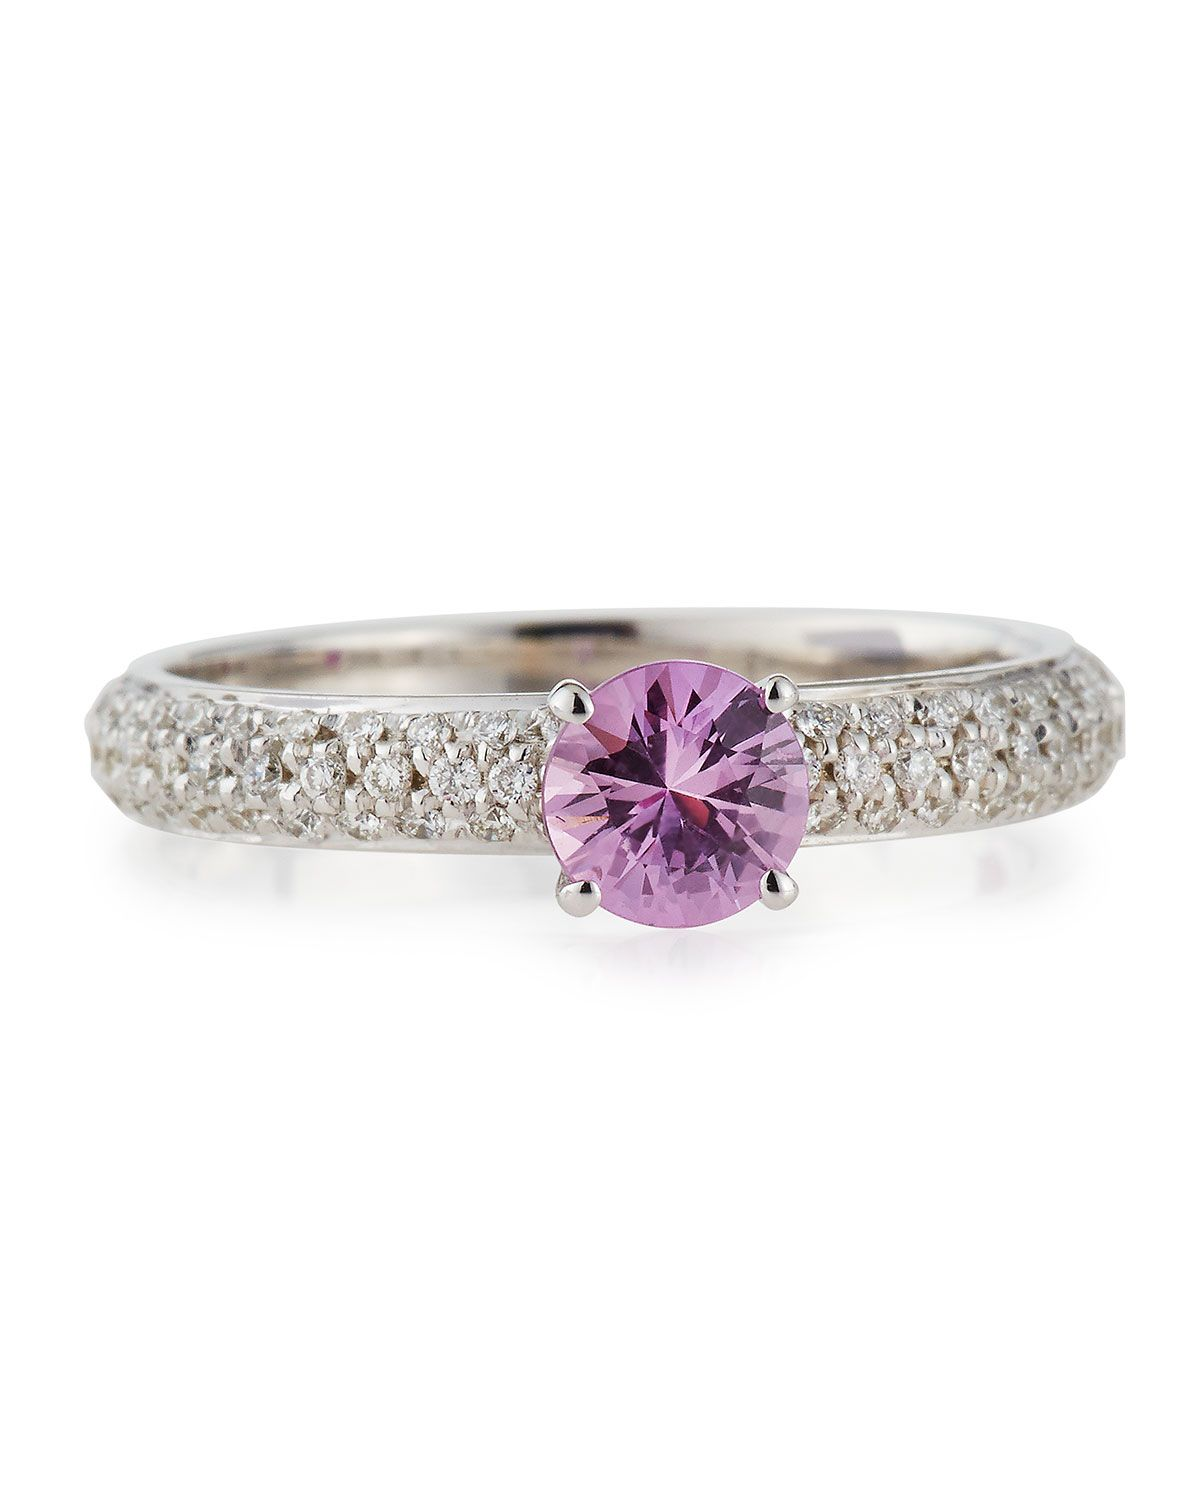 A Barbie Ring!  Roberto Coin Pink Sapphire Solitaire Ring with Pave Diamond Band, Size 6.5